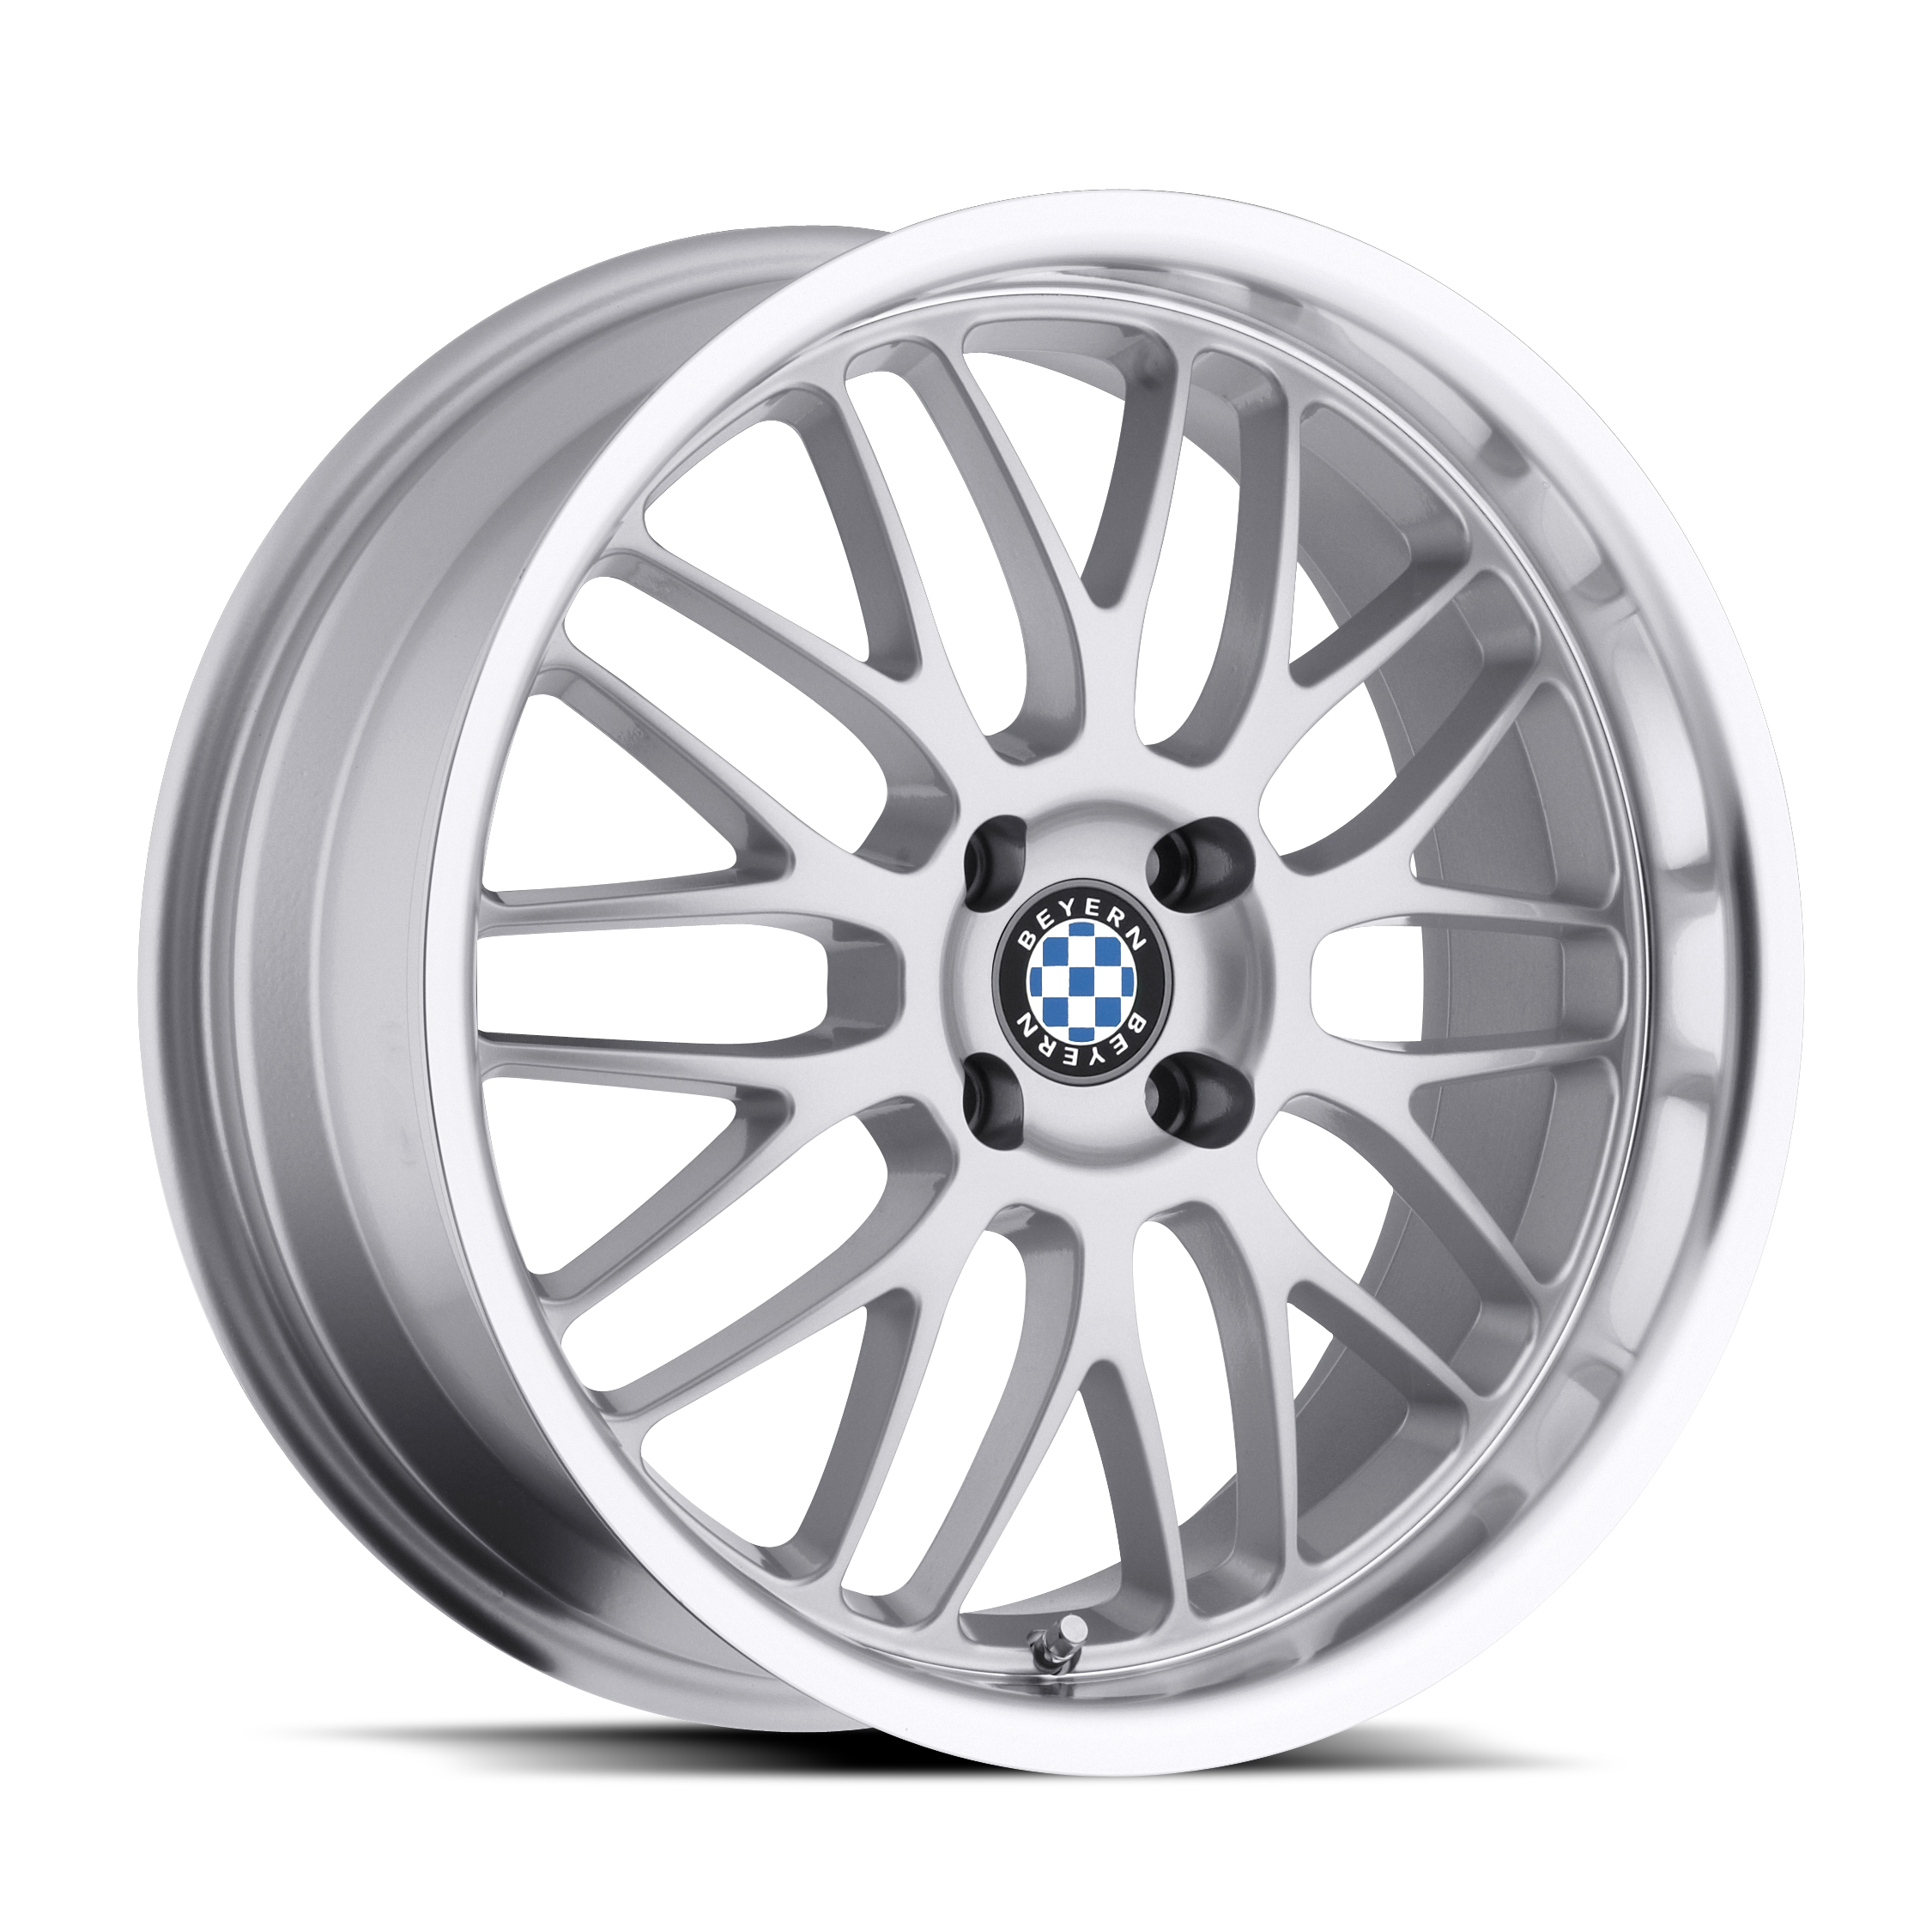 Beyern Wheels for BMWs Announces Mesh Model Is Its Best Seller for ...